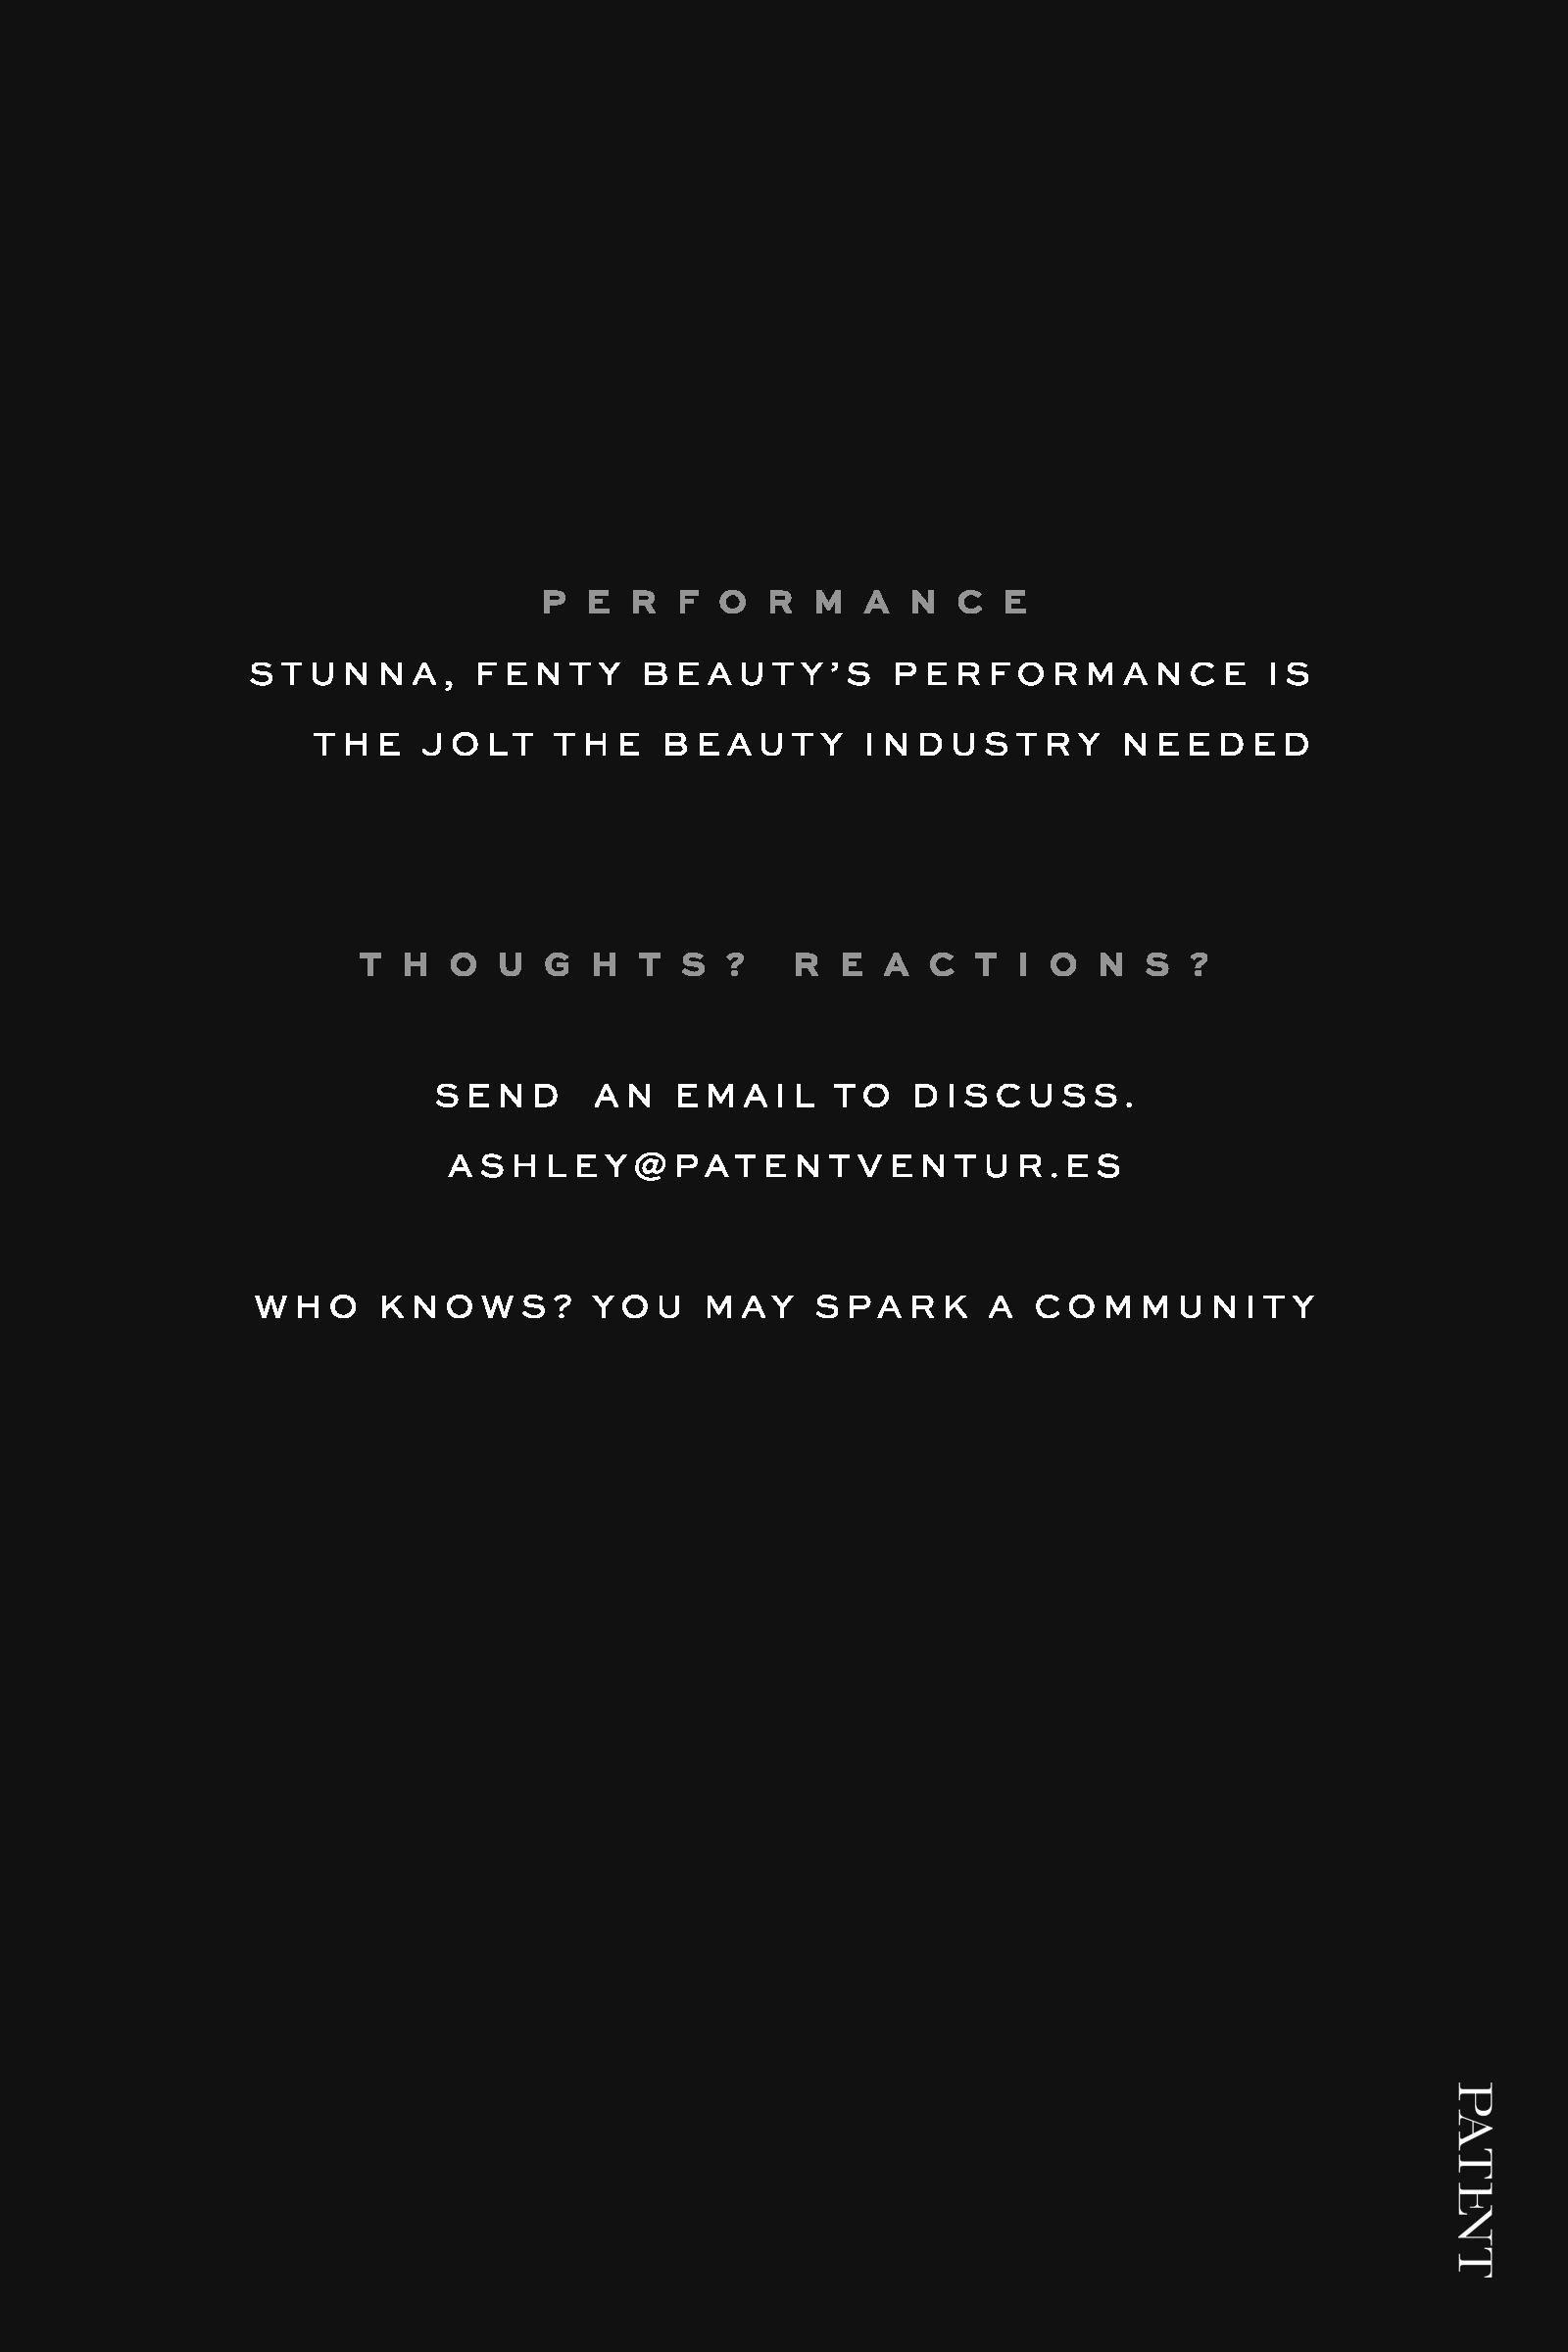 Stunna, Fenty Beauty s Performance Is the Jolt the Beauty Industry Needed-page-012